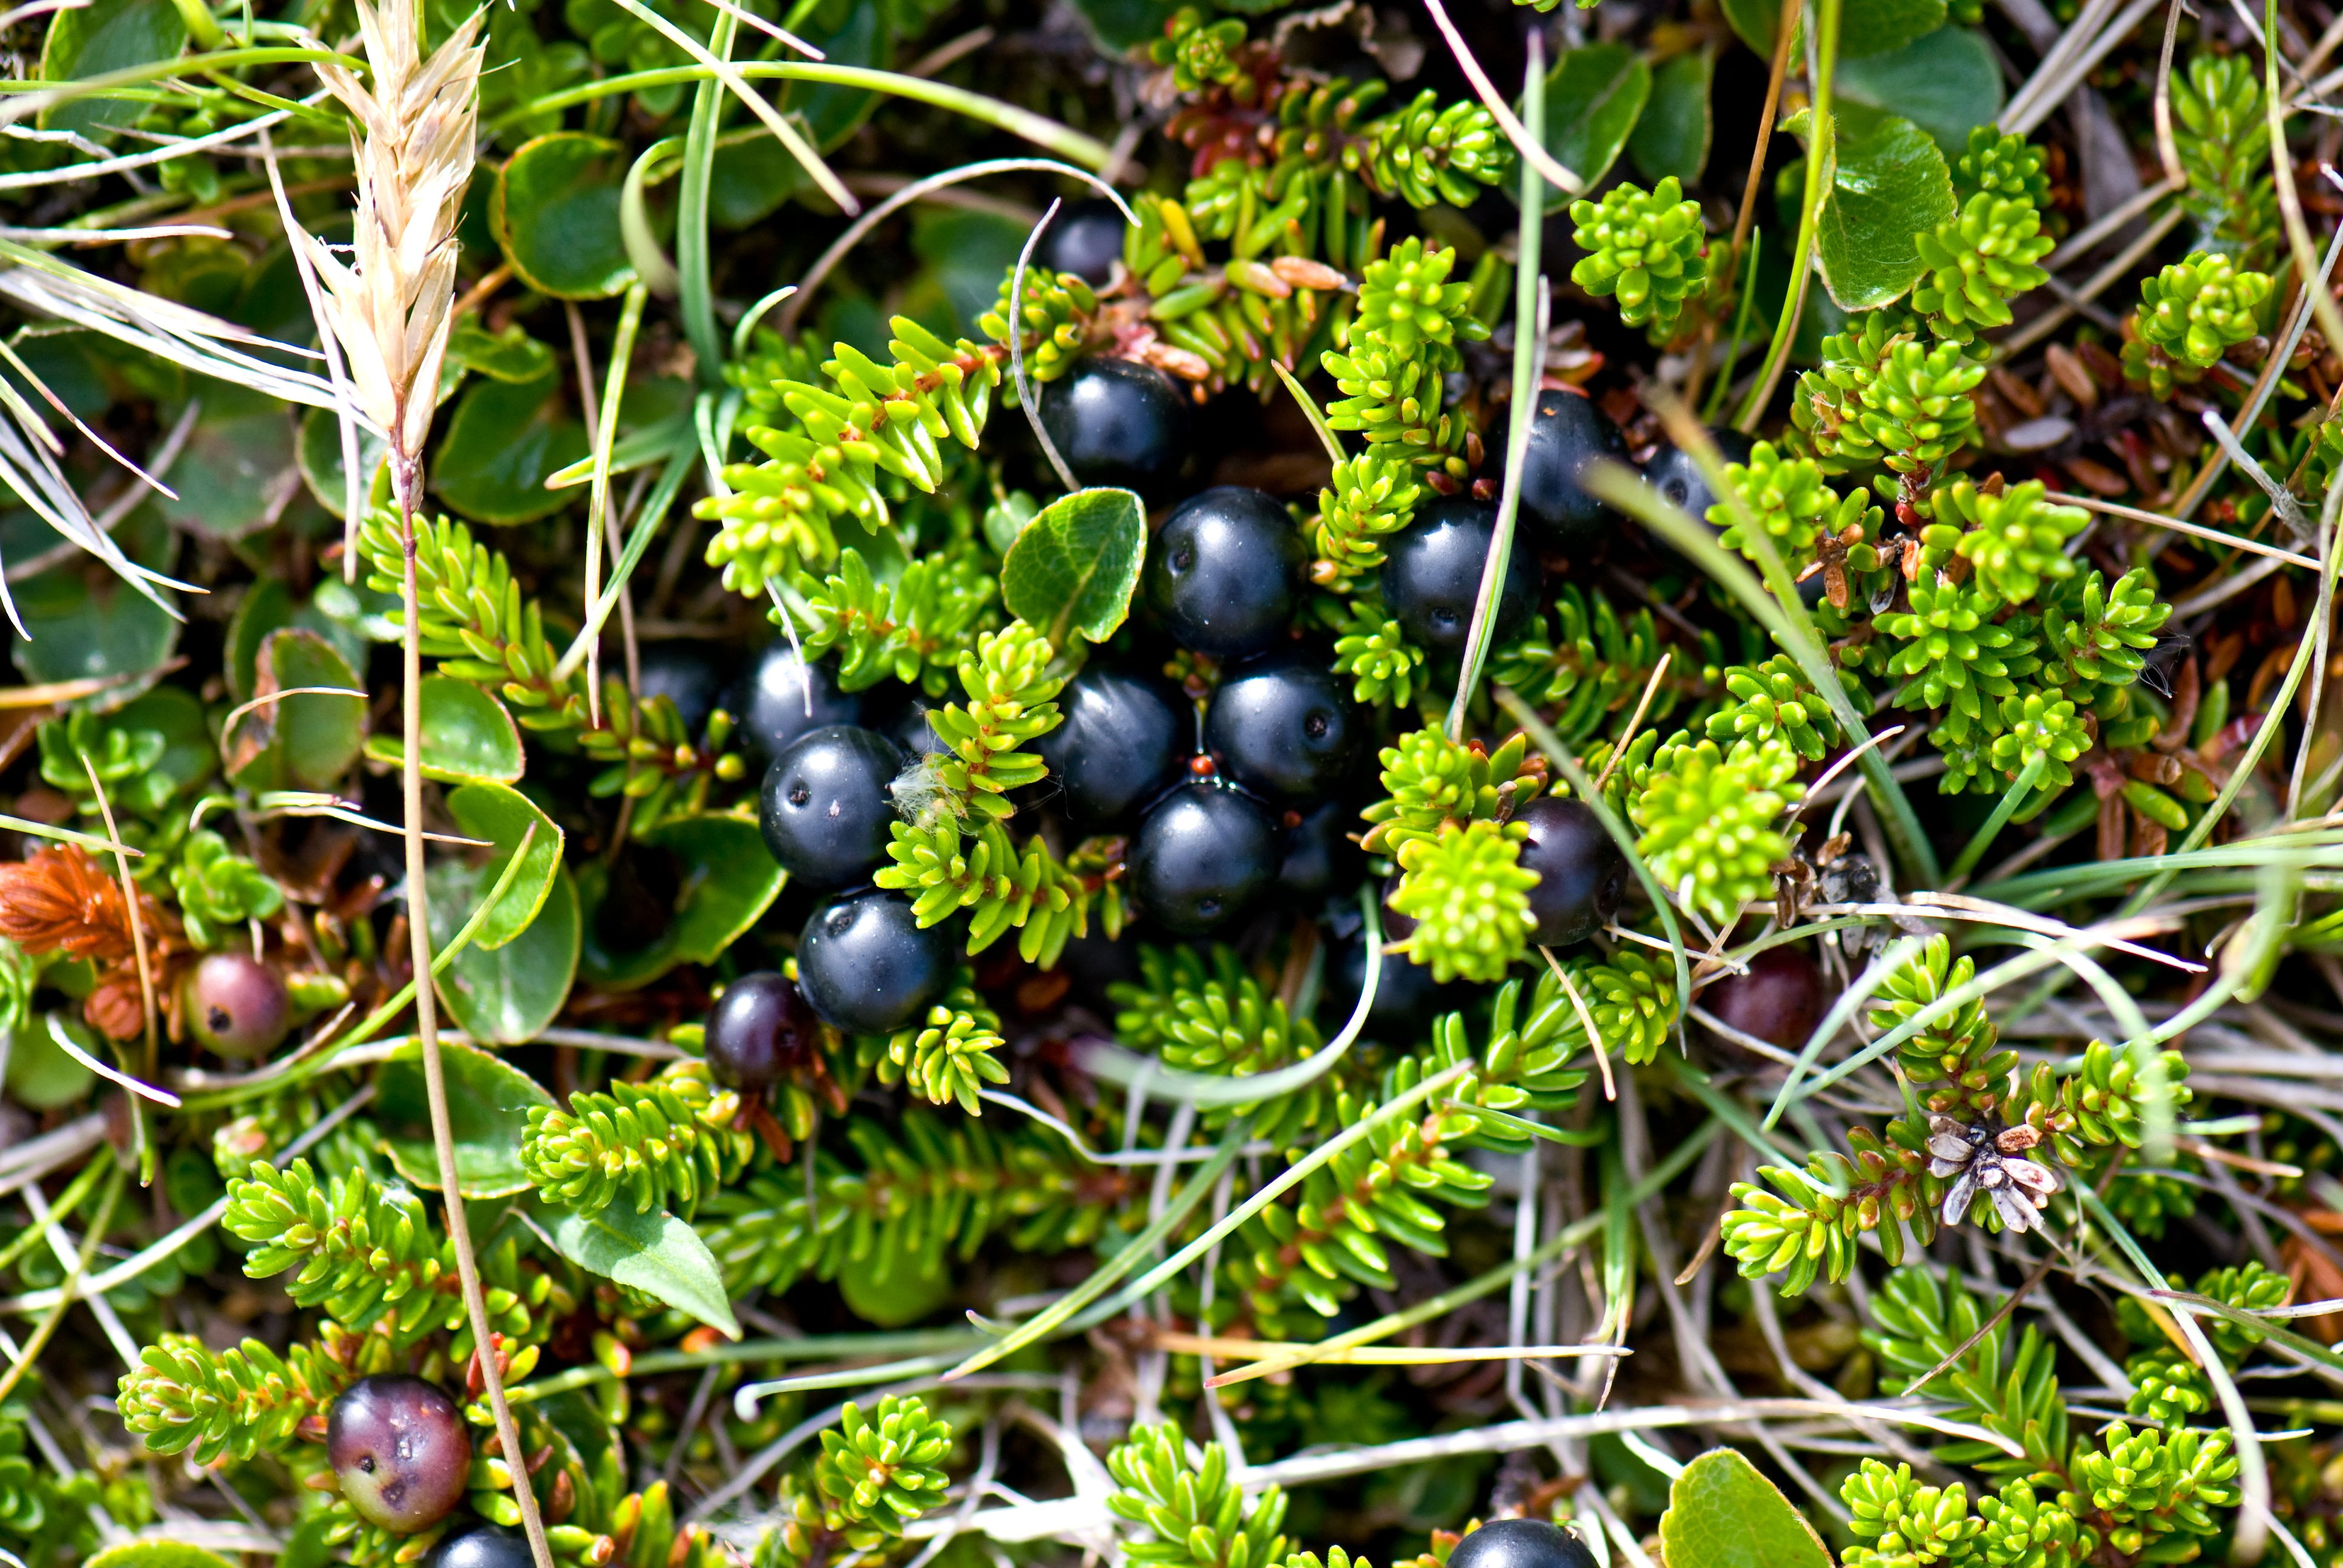 Crowberry, another badge of Clan MacFie